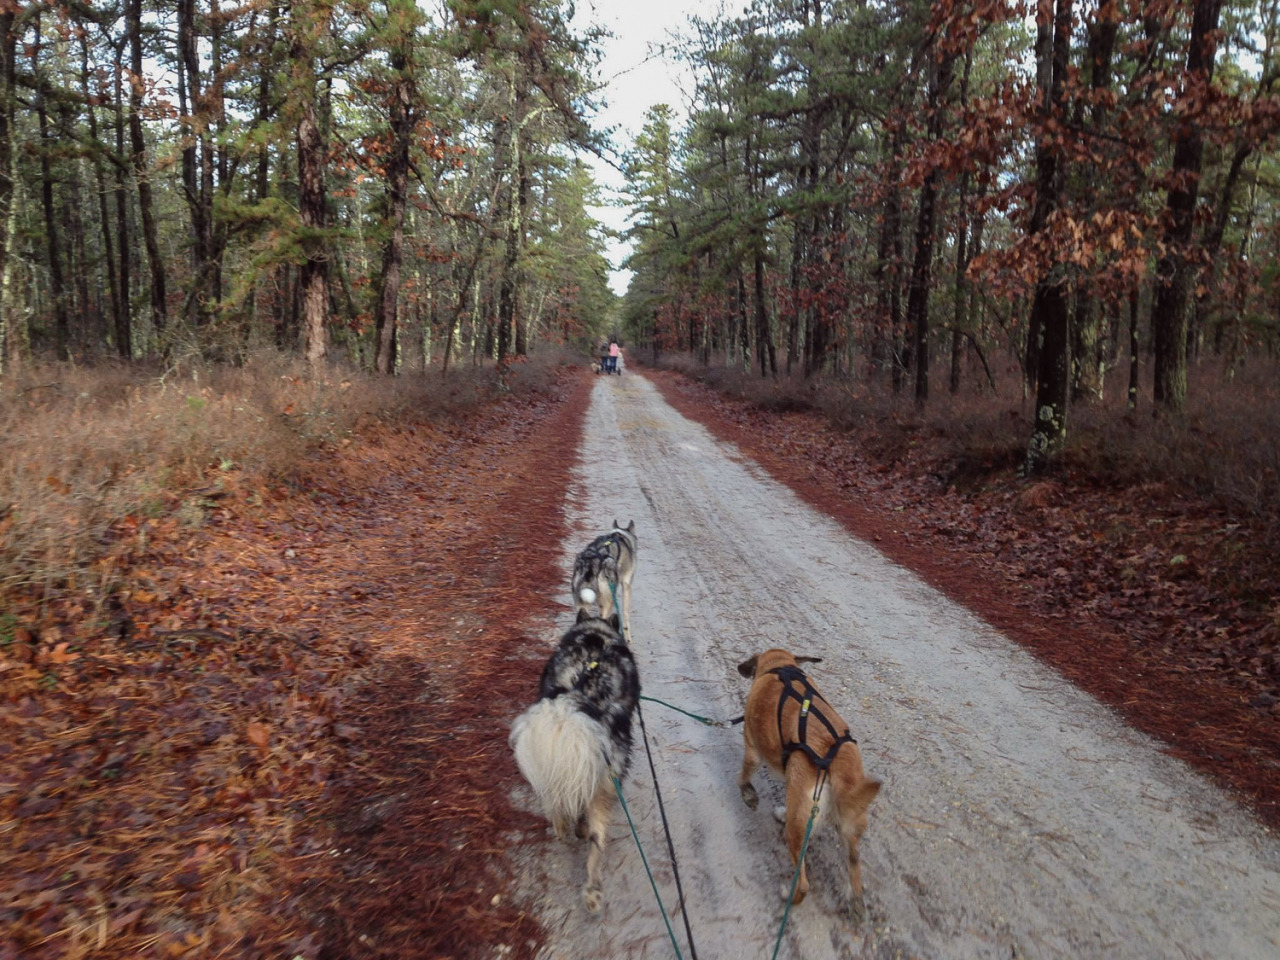 After all the rain we've had, the trails down in the Pine Barrens were more like small lakes. We tried a new 5.7 mile loop, which involved maneuvering through some huge puddles that just about submerged the the rig. The dogs didn't seem to mind. Especially Dexter – he actually ran better than ever. I guess maybe he's a Labrador mix after all.   Towards the end of our run, we caught up with Jessica's team and Bryan's team (fellow Jersey Sands mushers). It was nice having some teams to chase for the final stretch, and to get the dogs used to other dogs nearby. Passing is a different story, but I'm grateful to have other mushers involved in this crazy sport to train with me!